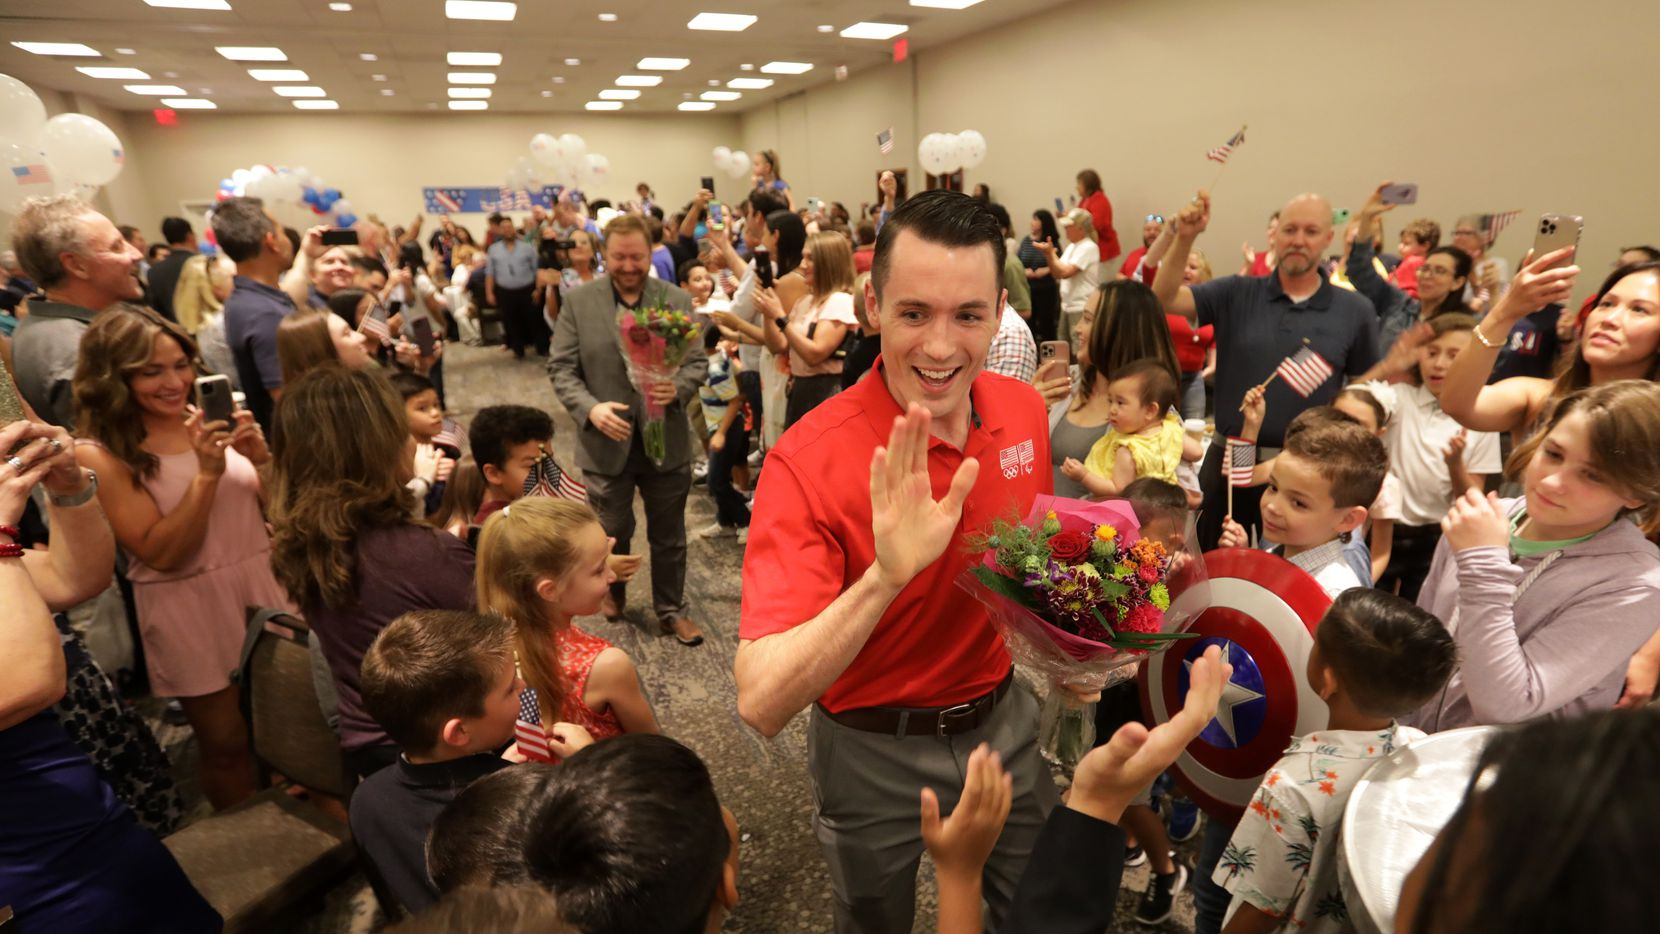 Tom Scott greets supporters during an Olympics sendoff party at The Westin Galleria in Dallas, TX, on Jul. 9, 2021.